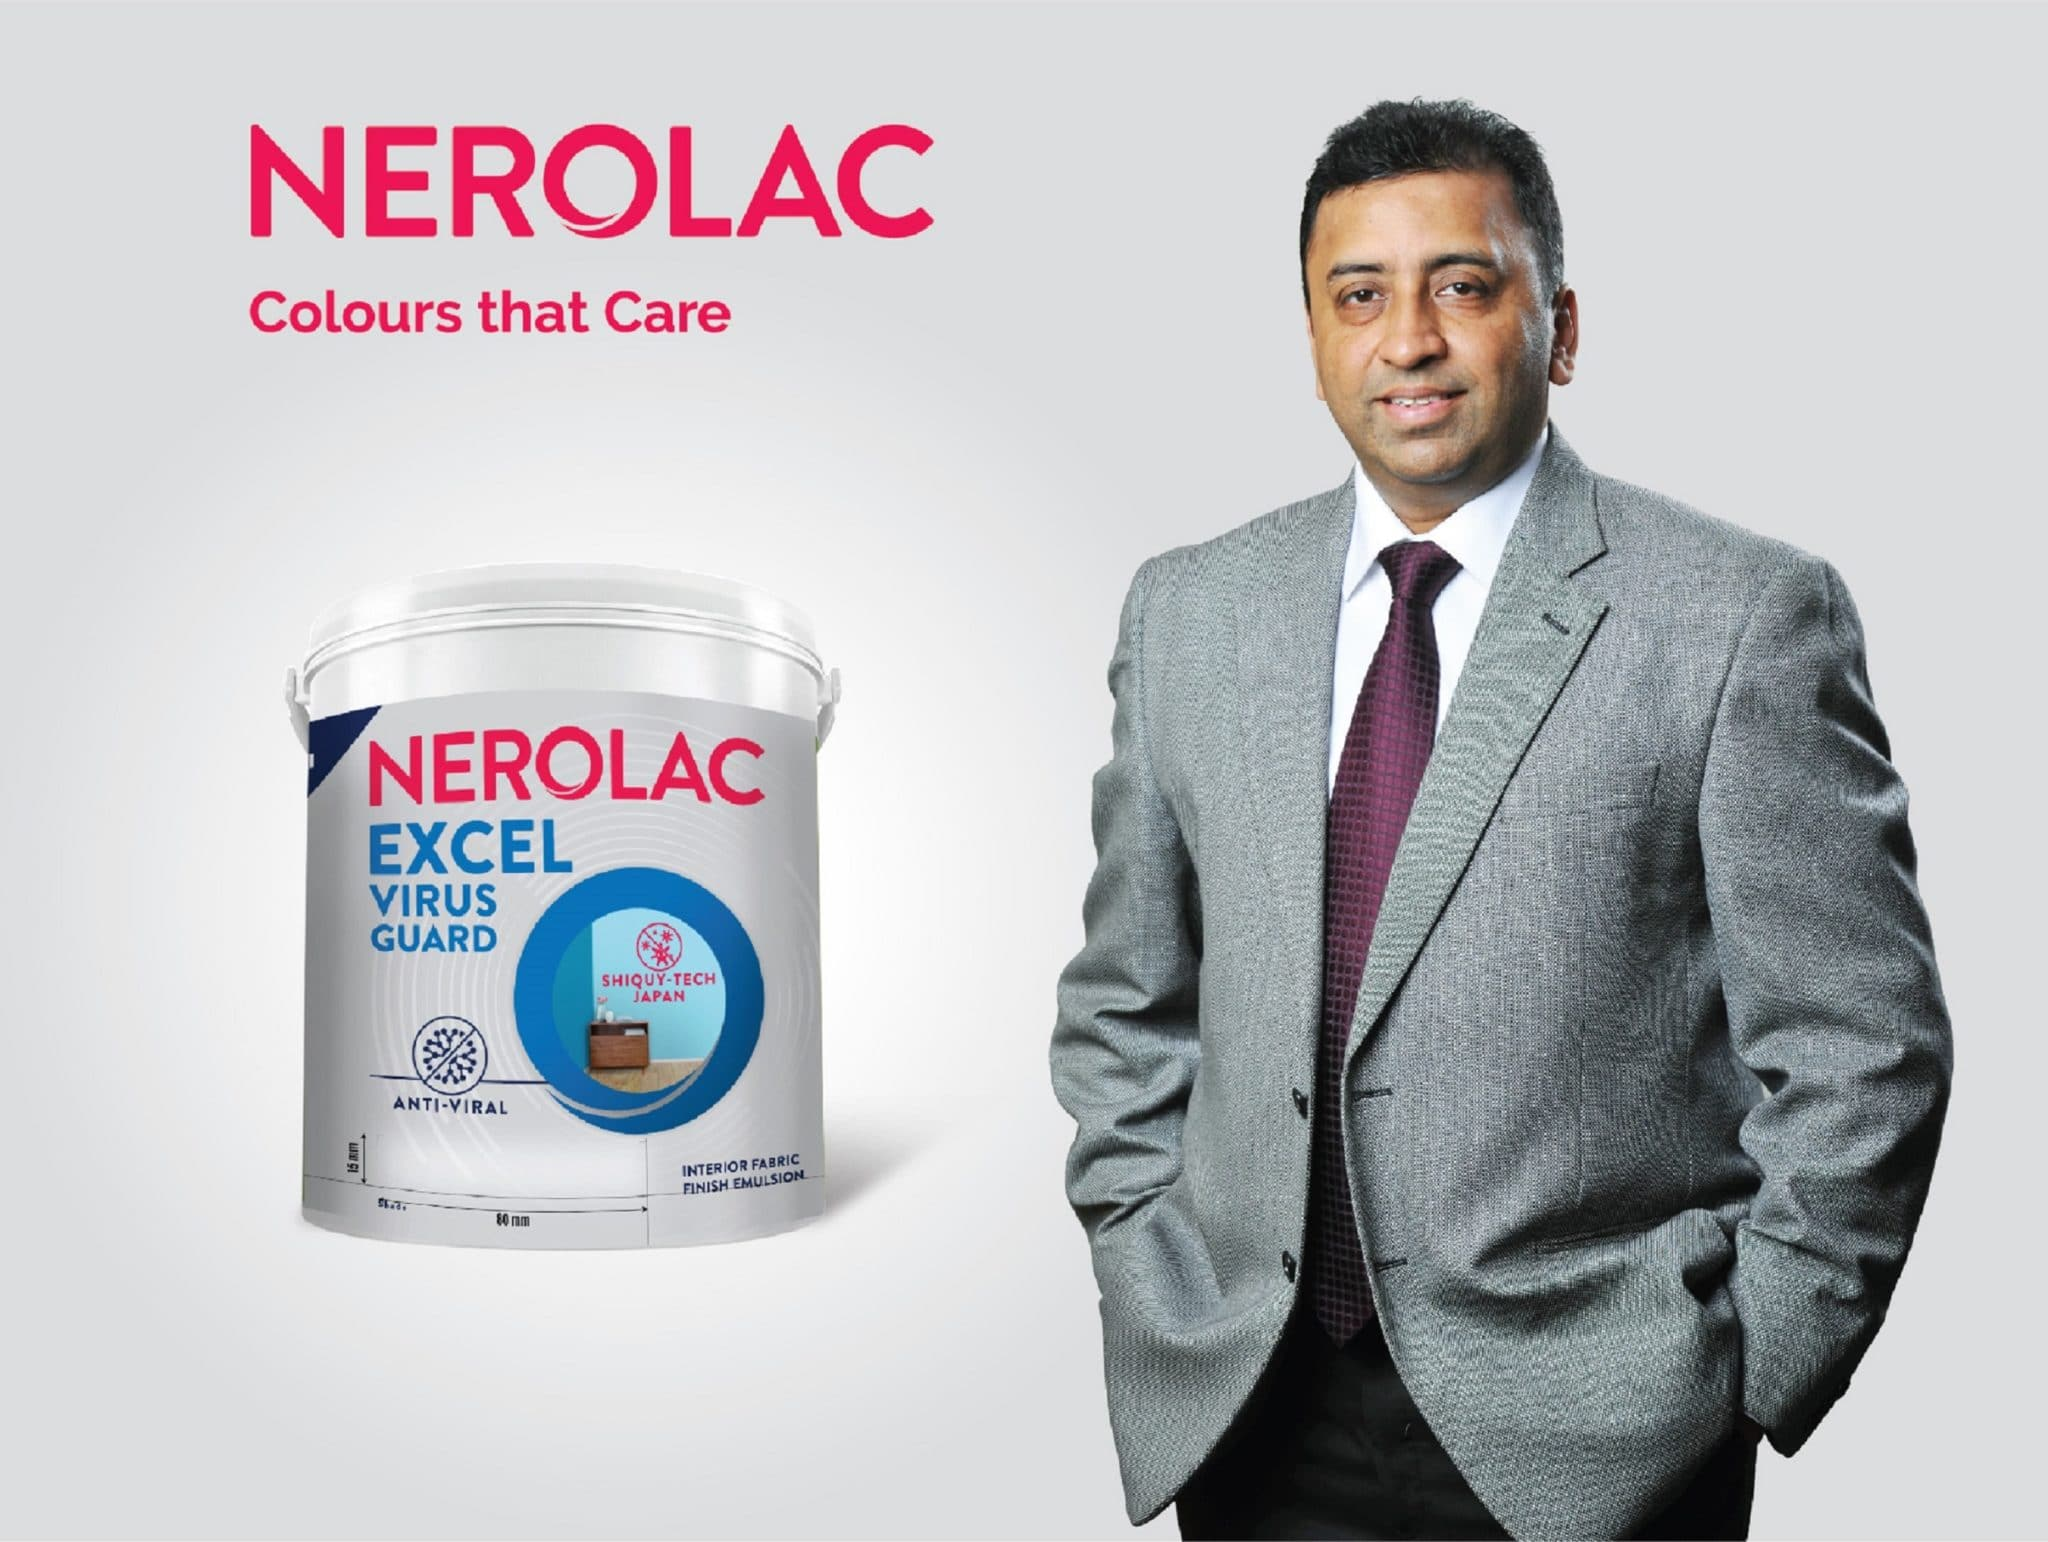 Mr.-Anuj-Jain-Executive-Director-Kansai-Nerolac-Paints-Ltd-scaled.jpg